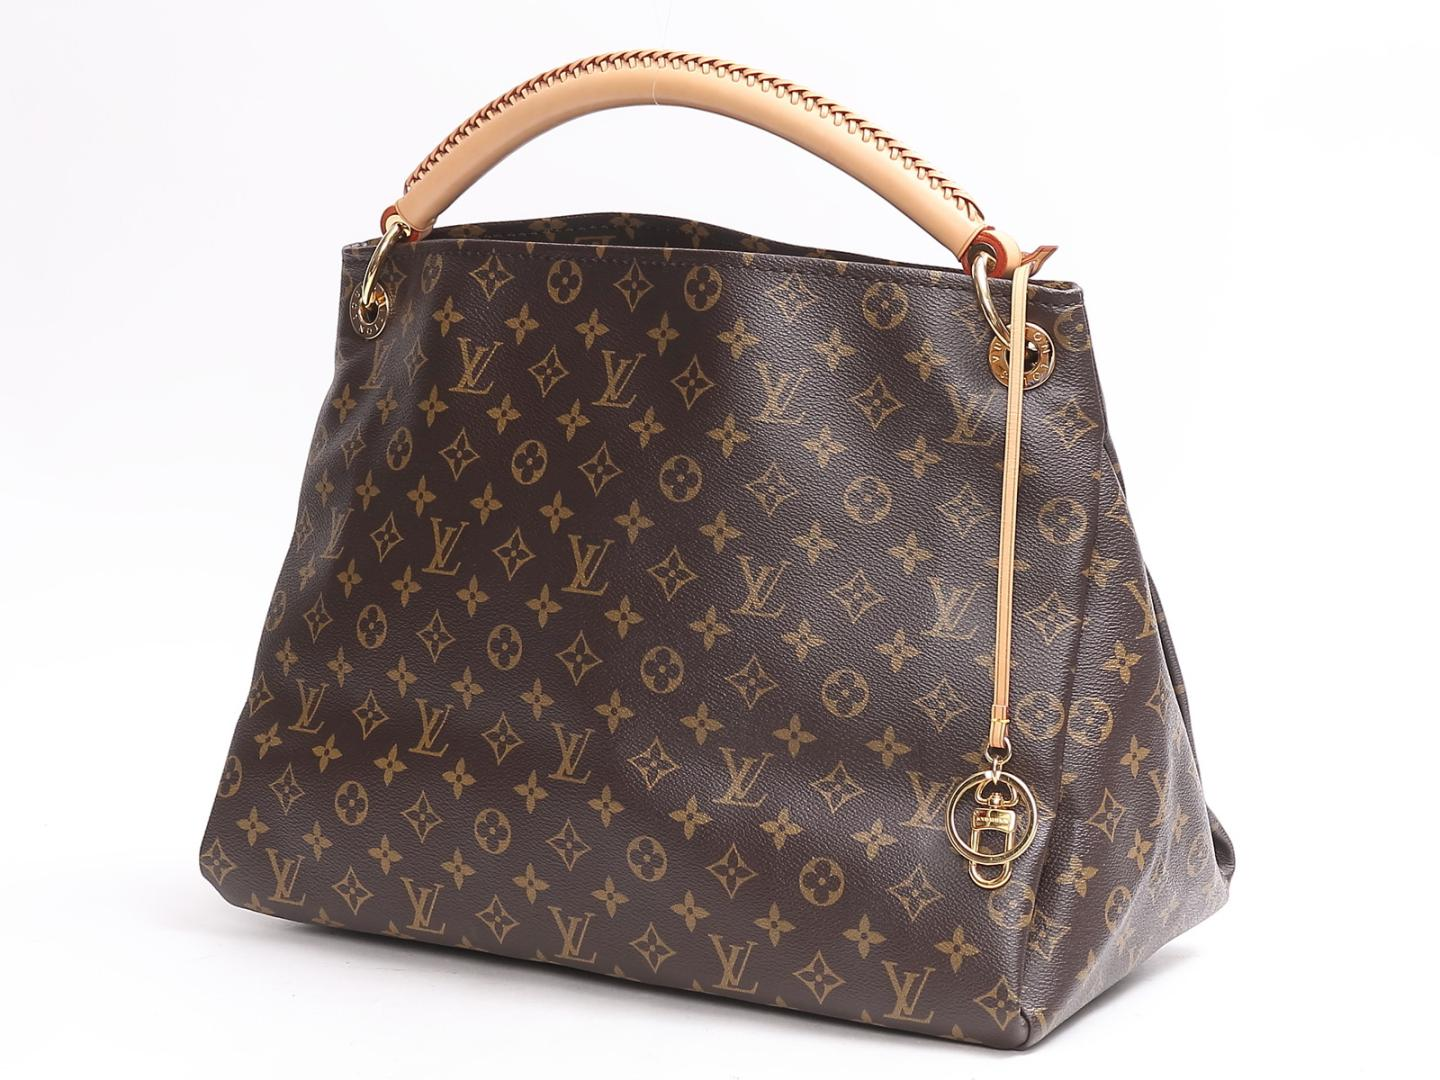 (Free shipping) Auth LOUIS VUITTON Artsy MM shoulder bag M40249 Monogram  Used  18252e160f8e3